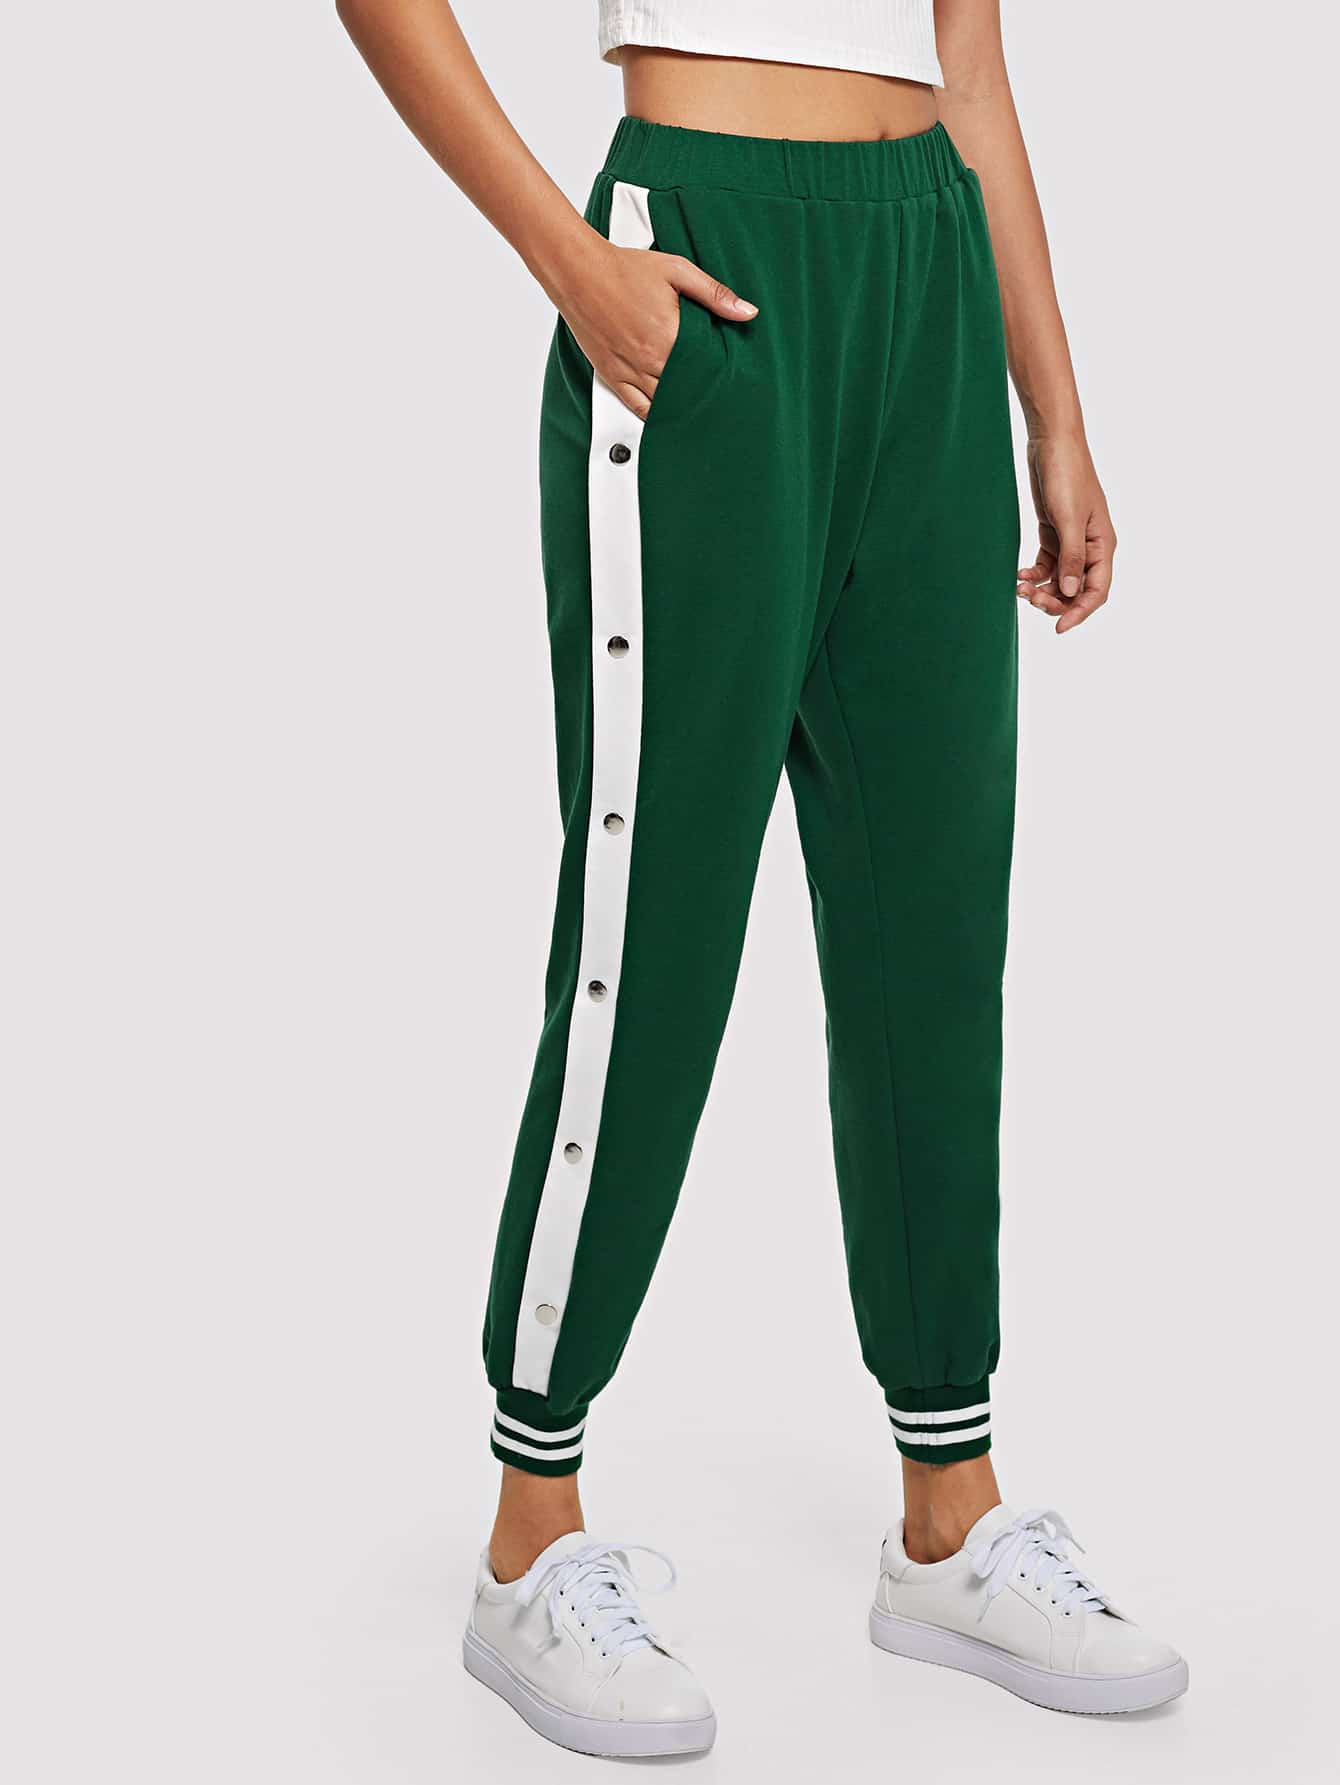 Contrast Snap Button Side Striped Hem Sweatpants contrast striped side sweatpants